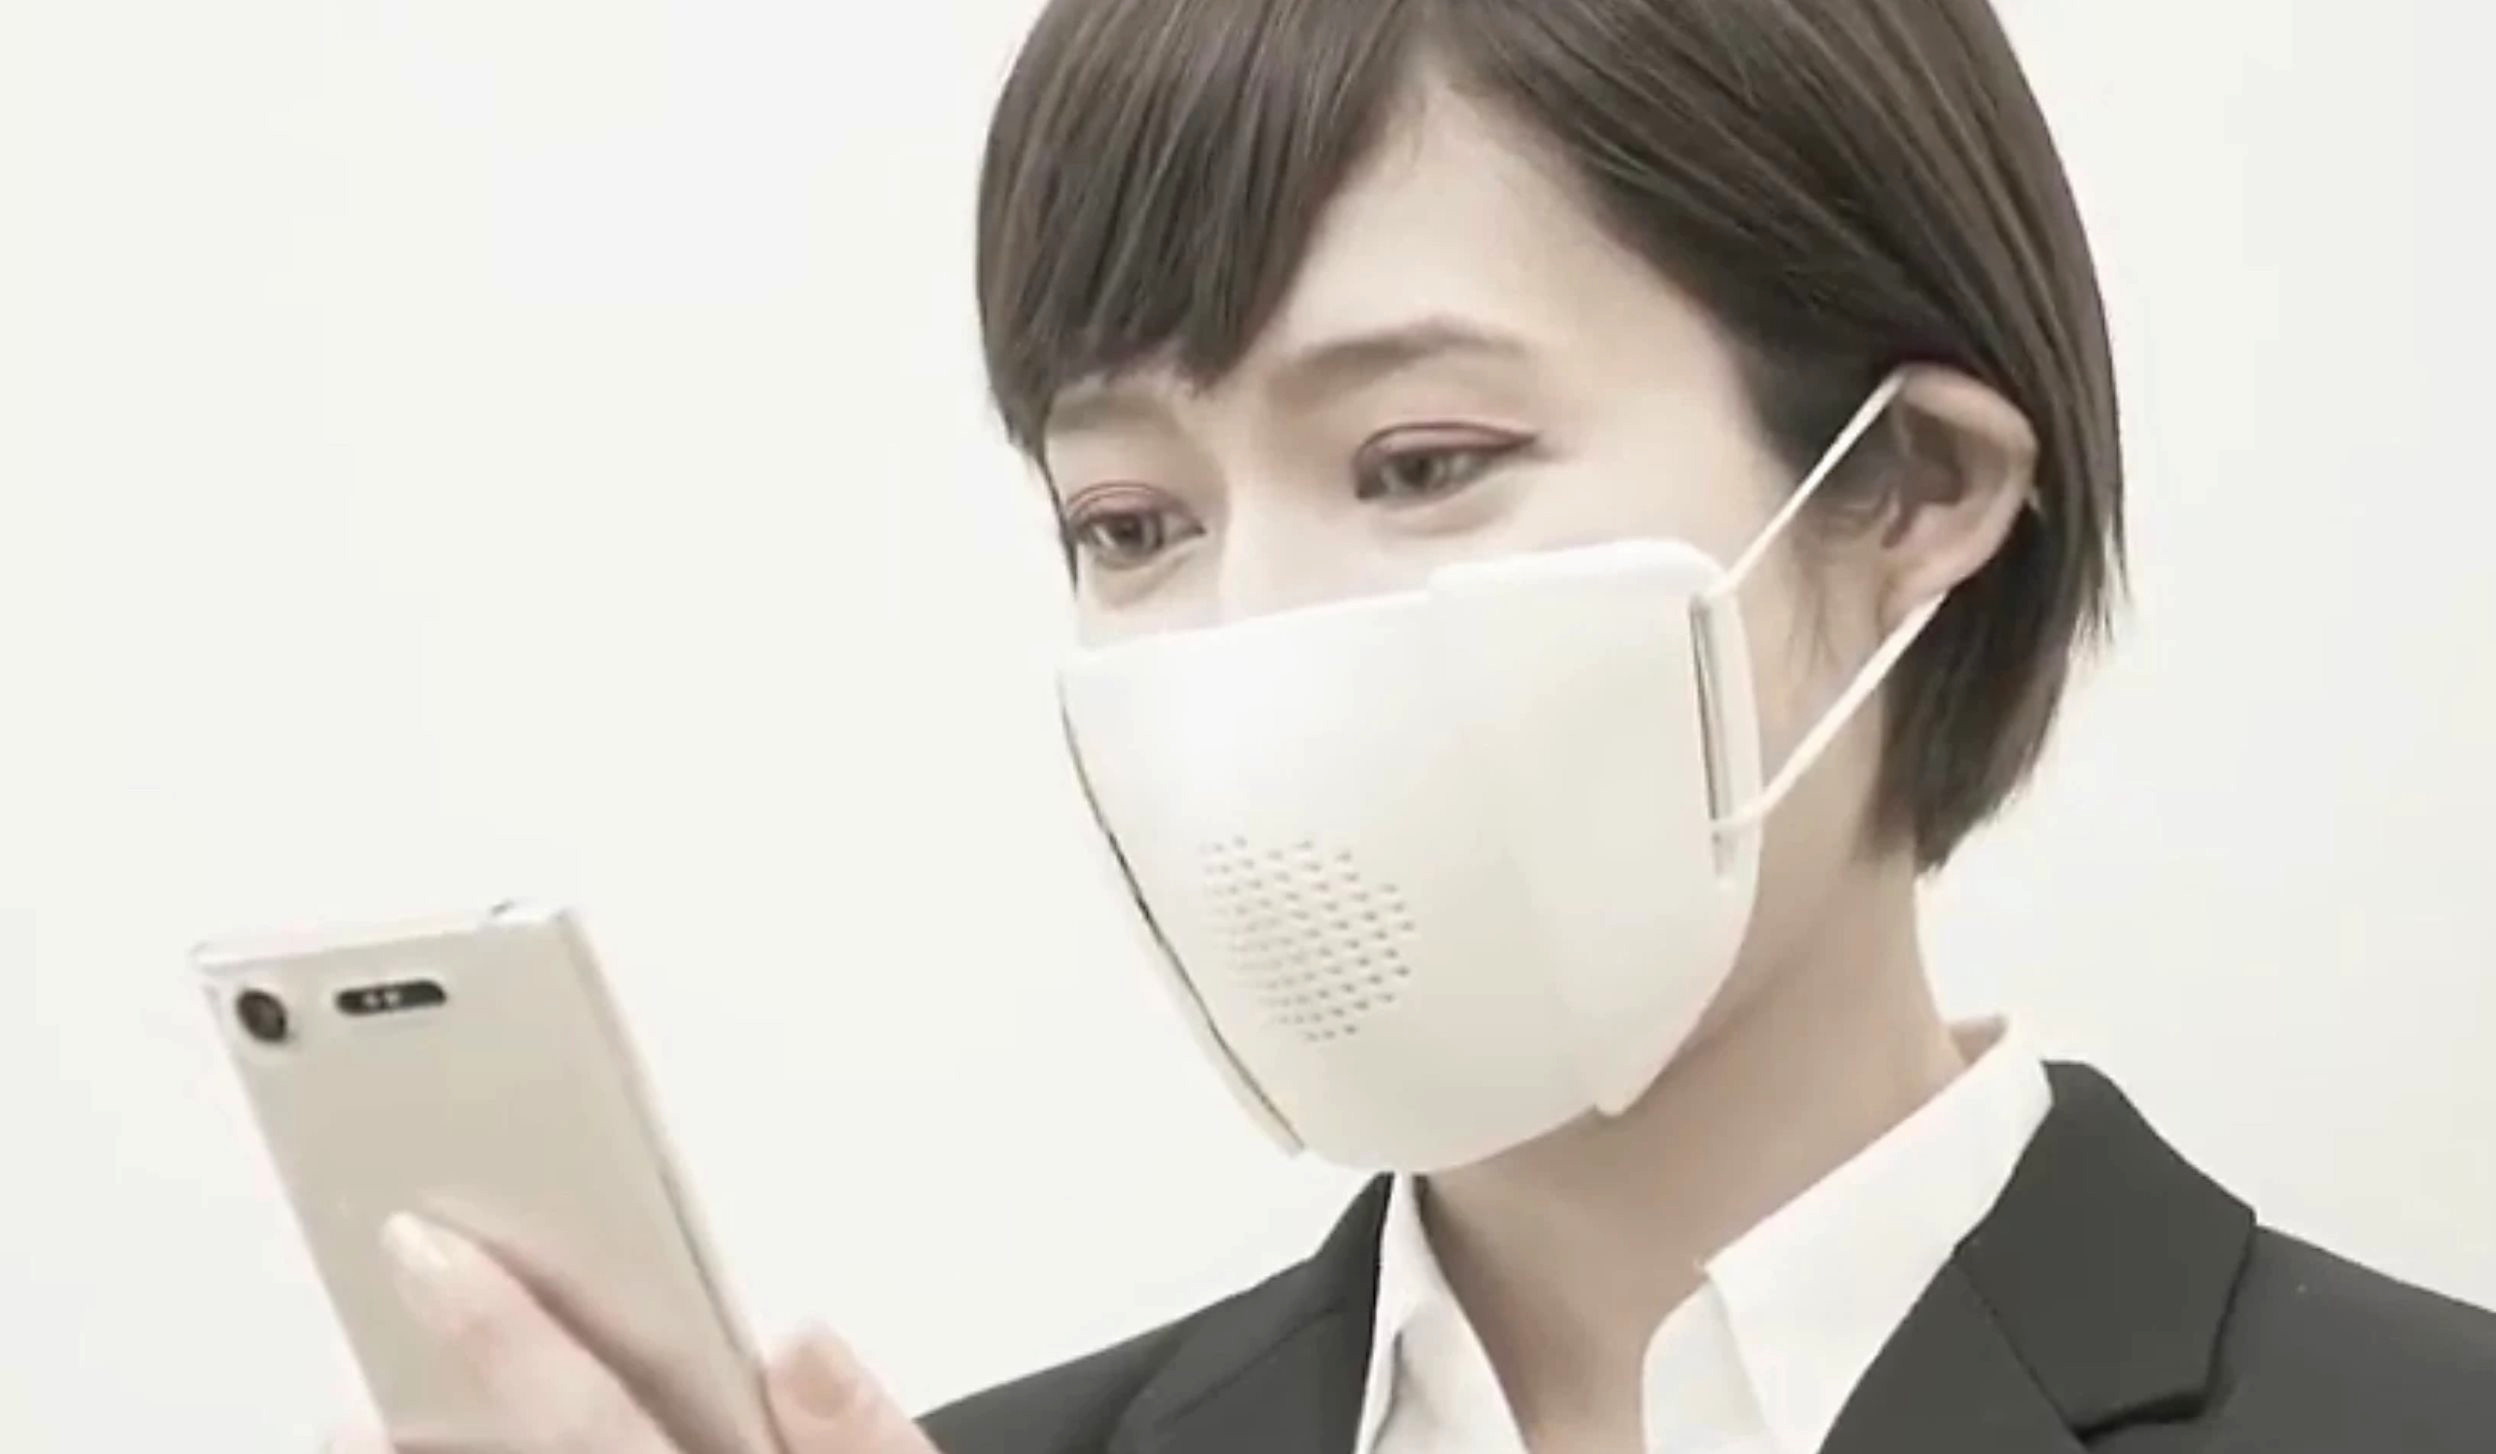 The new normal? Japanese startup creates 'connected' face masks